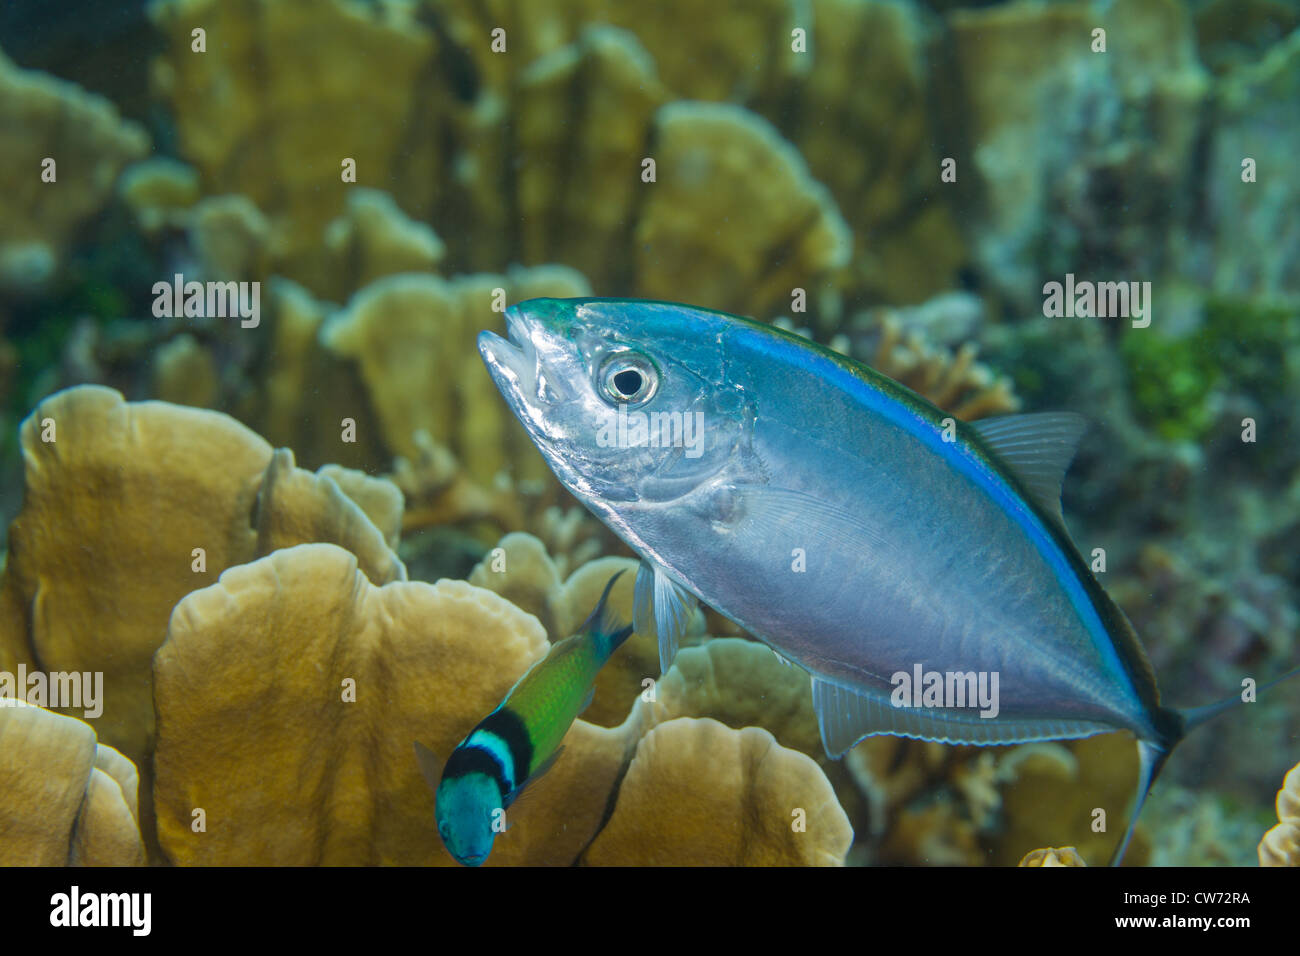 Bar jack and Bluehead wrasse engaged in cleaning behavior - Stock Image